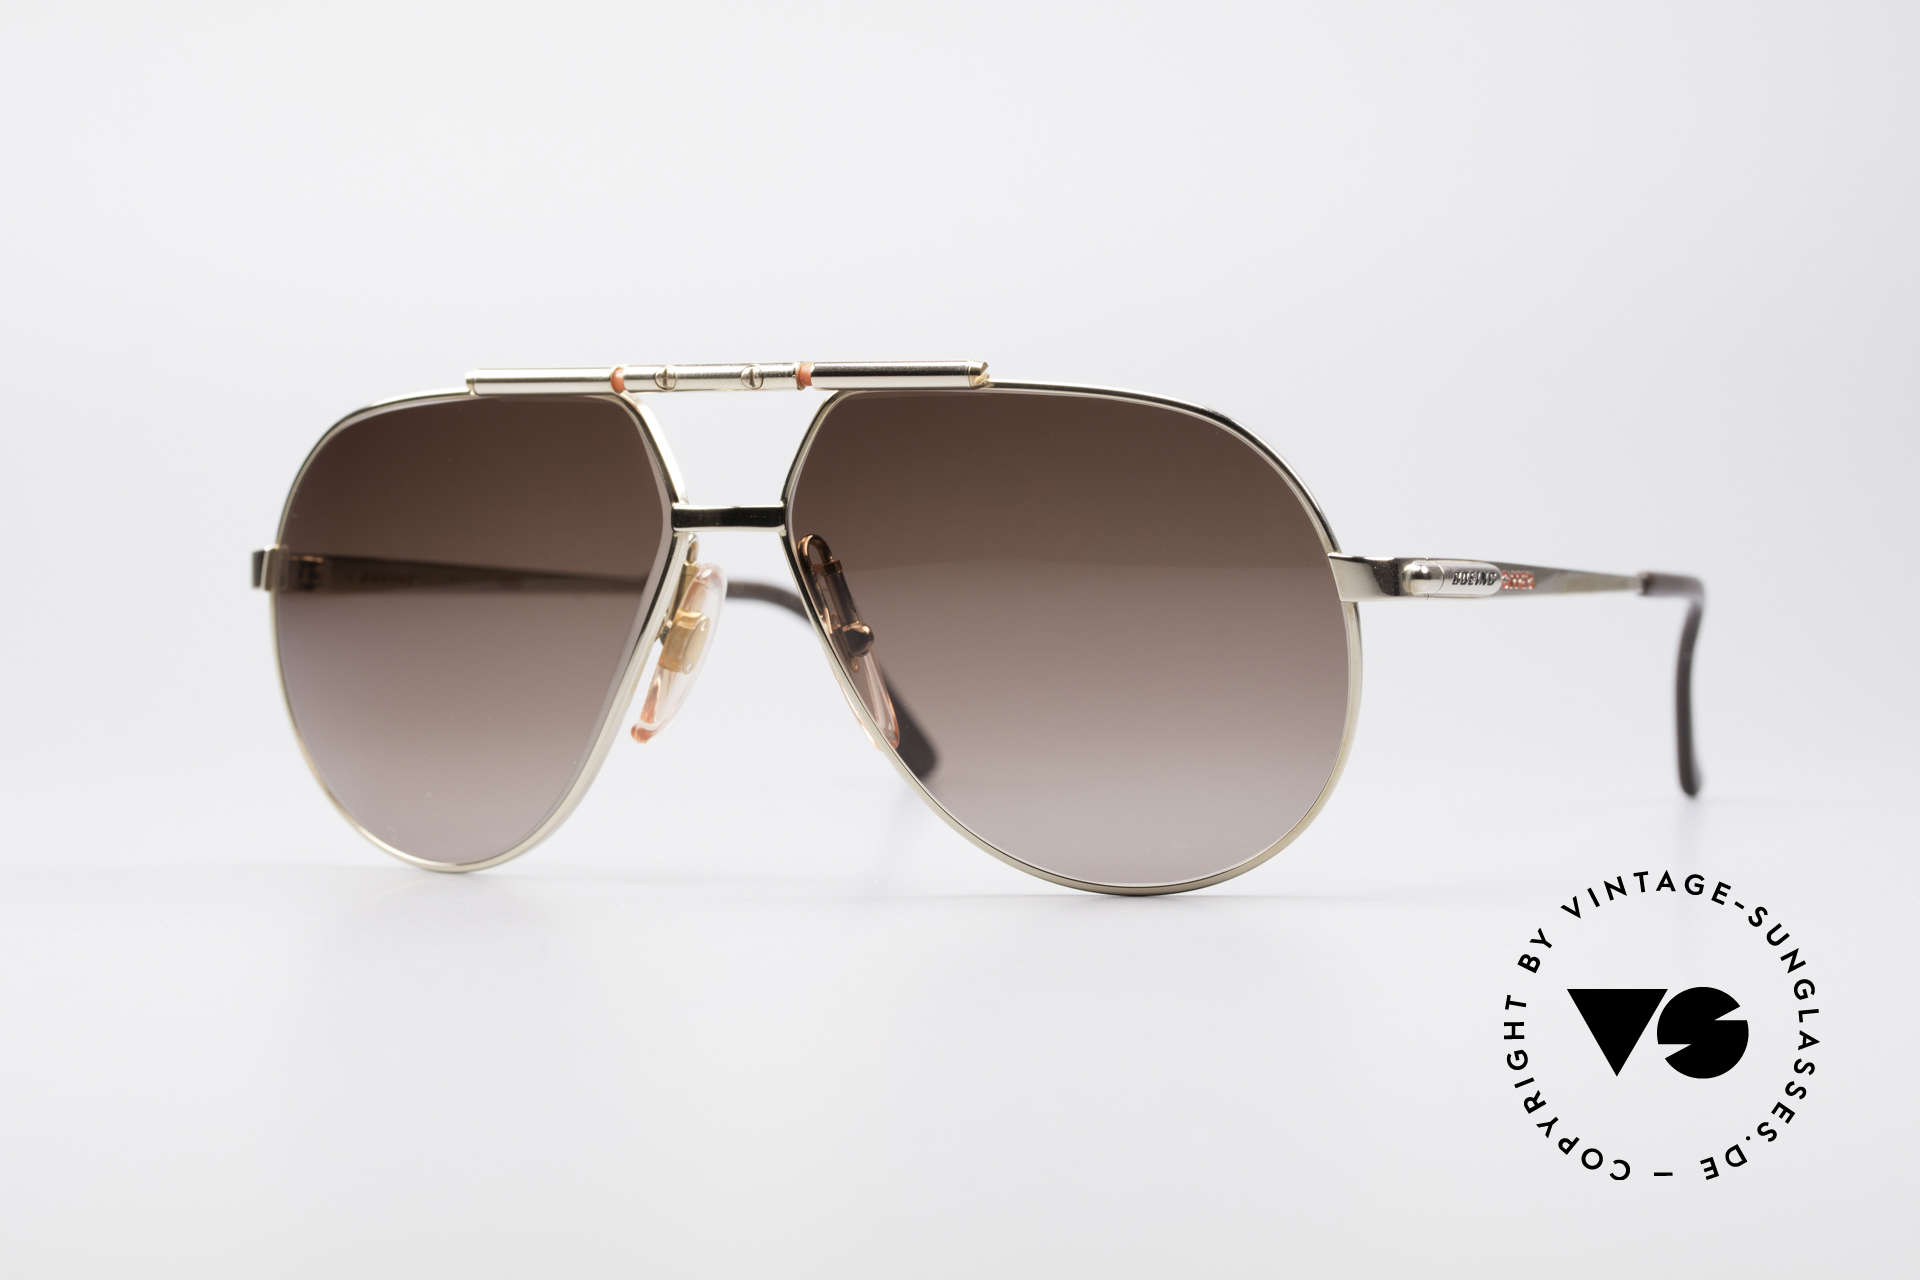 Boeing 5732 High Tech 80's Pilots Shades, The BOEING Collection by Carrera from 1988/1989, Made for Men and Women